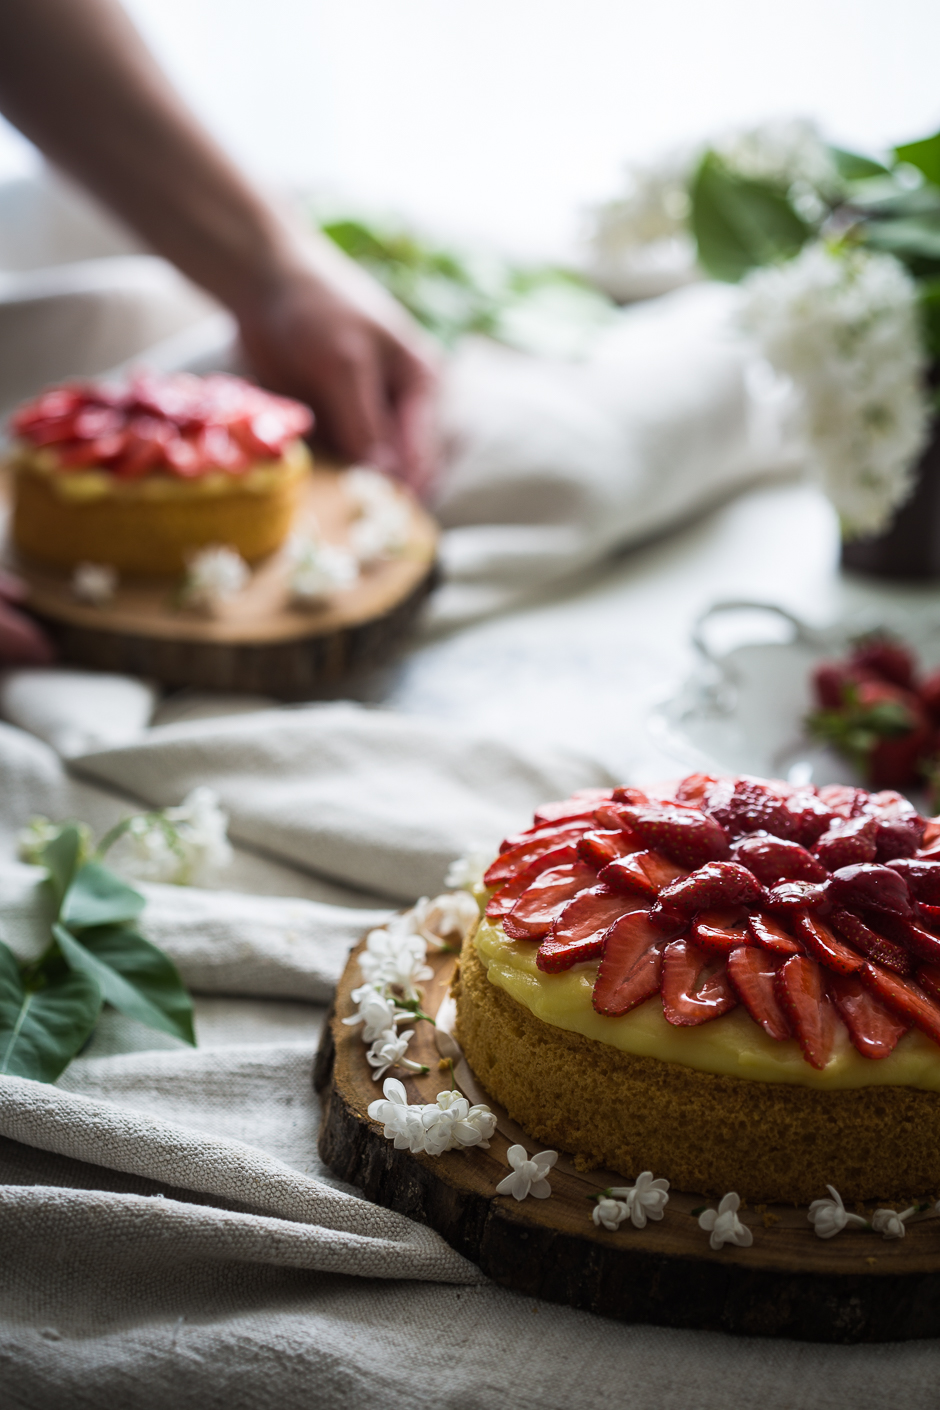 strawberry cake from the Taste of Memories Hungarian country kitchen www.tasteofmemories.com